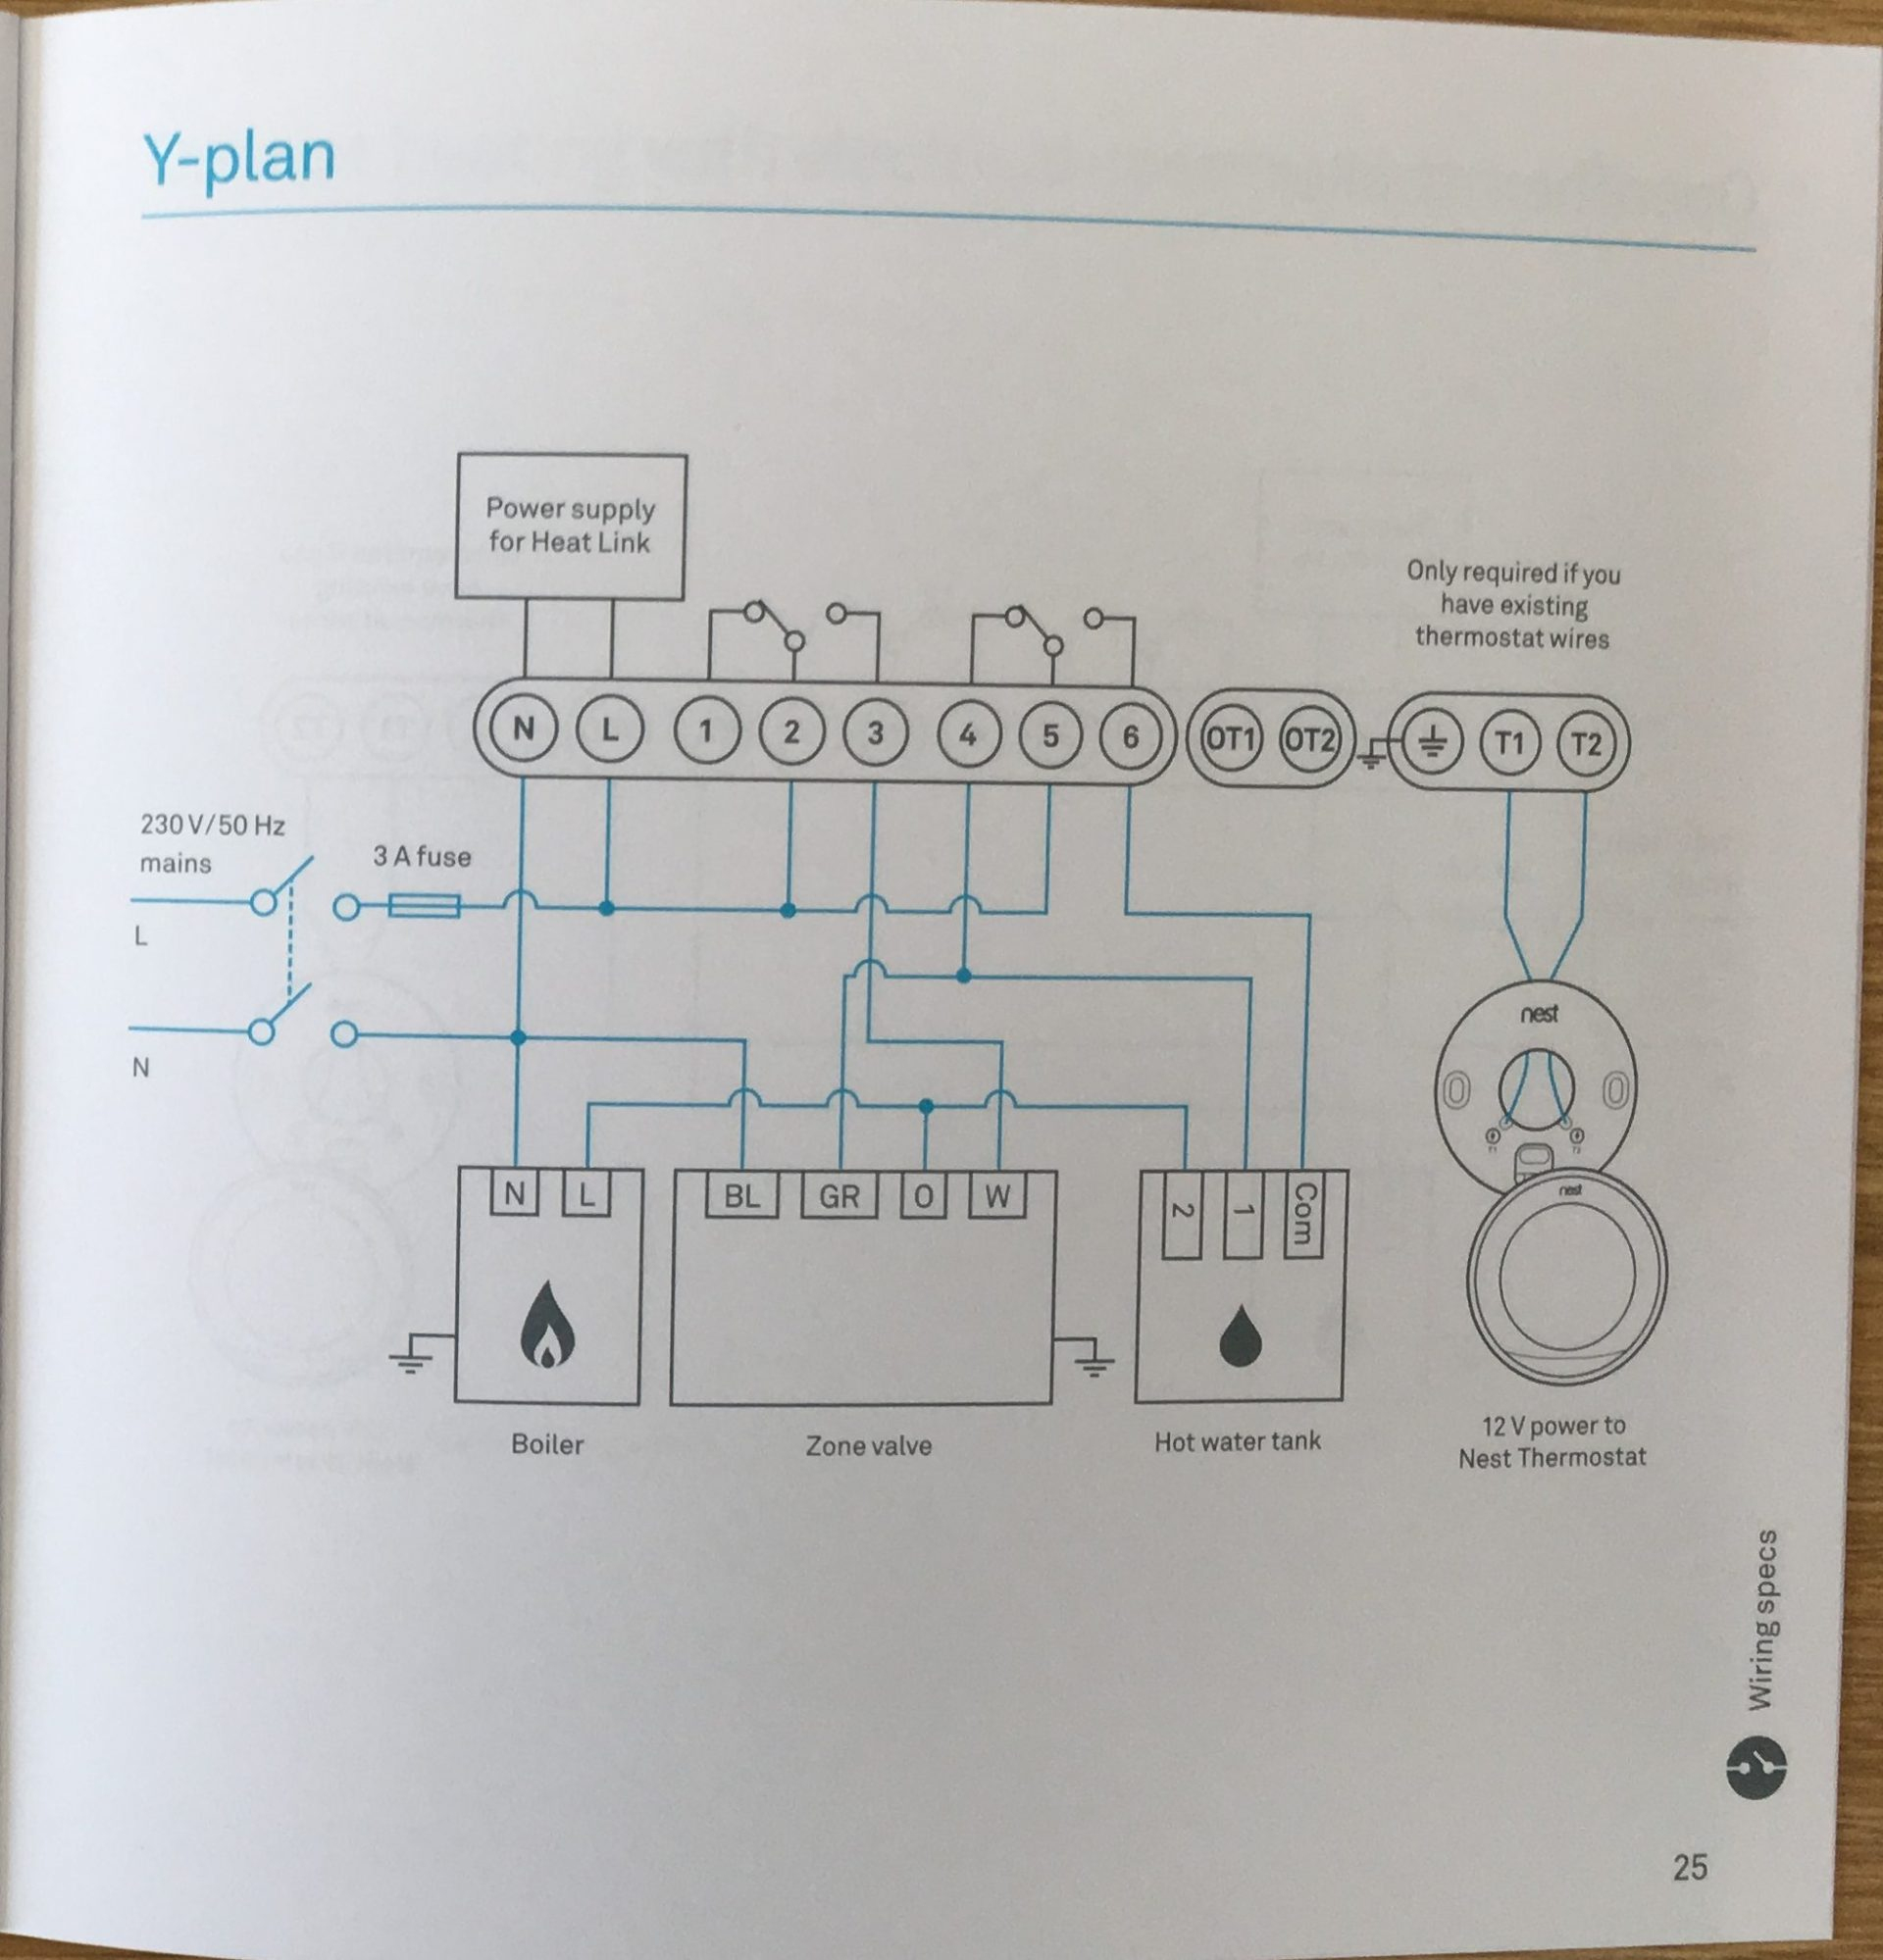 How To Install The Nest Learning Thermostat (3Rd Gen) In A Y-Plan - Nest Wiring Diagram Pdf